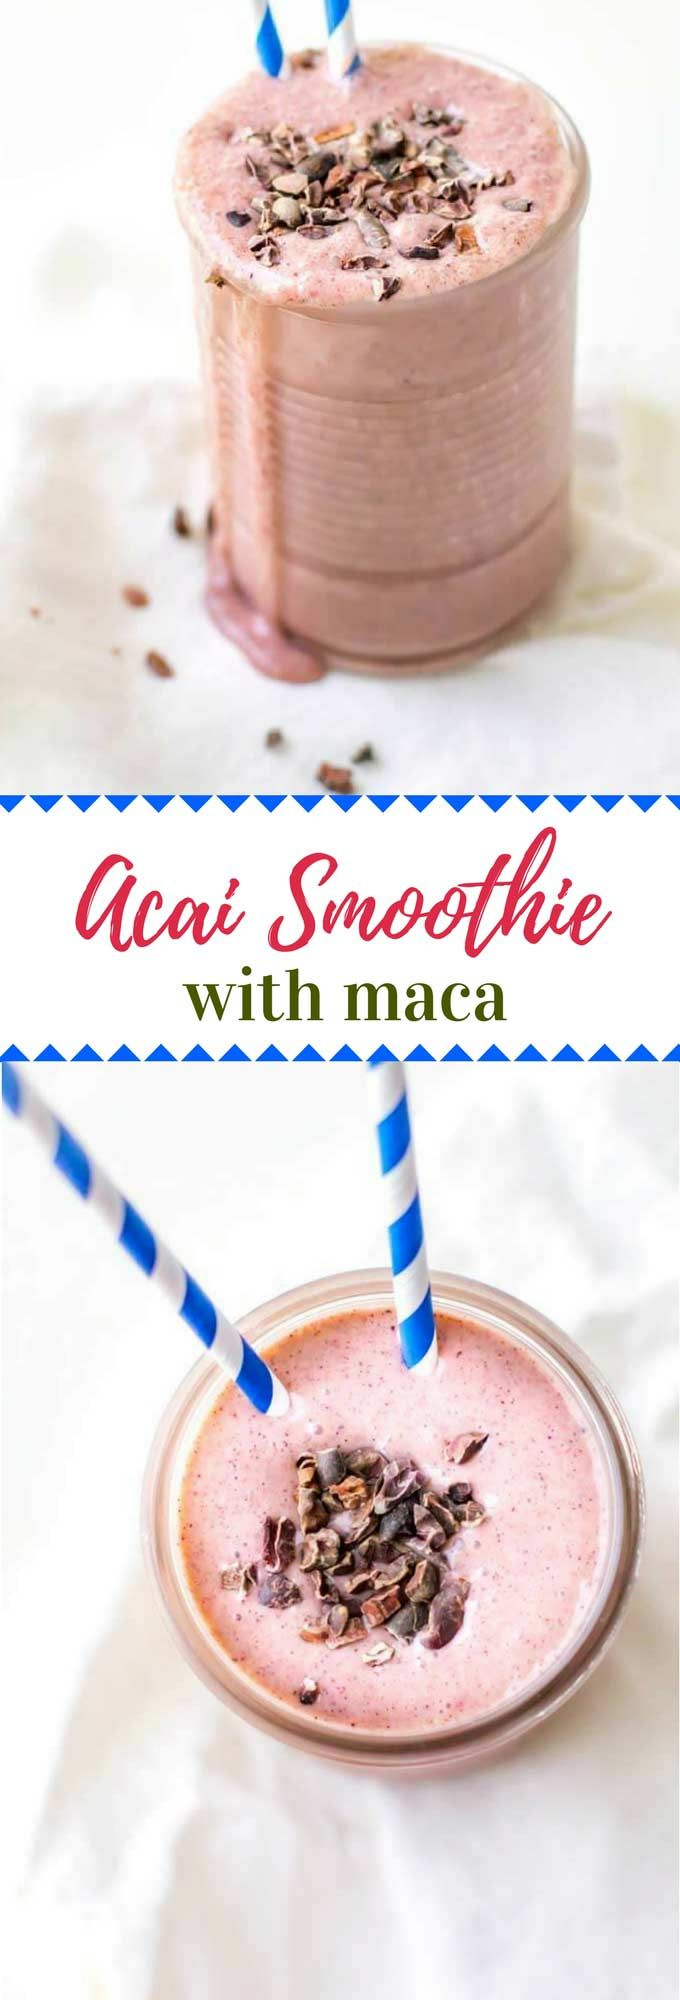 This Acai Smoothie Recipe is a delicious healthy drink that will boost for energy, support your immune system and help with detox.  Made with acai powder, this vegan smoothie is loaded with superfoods. via @wendypolisi